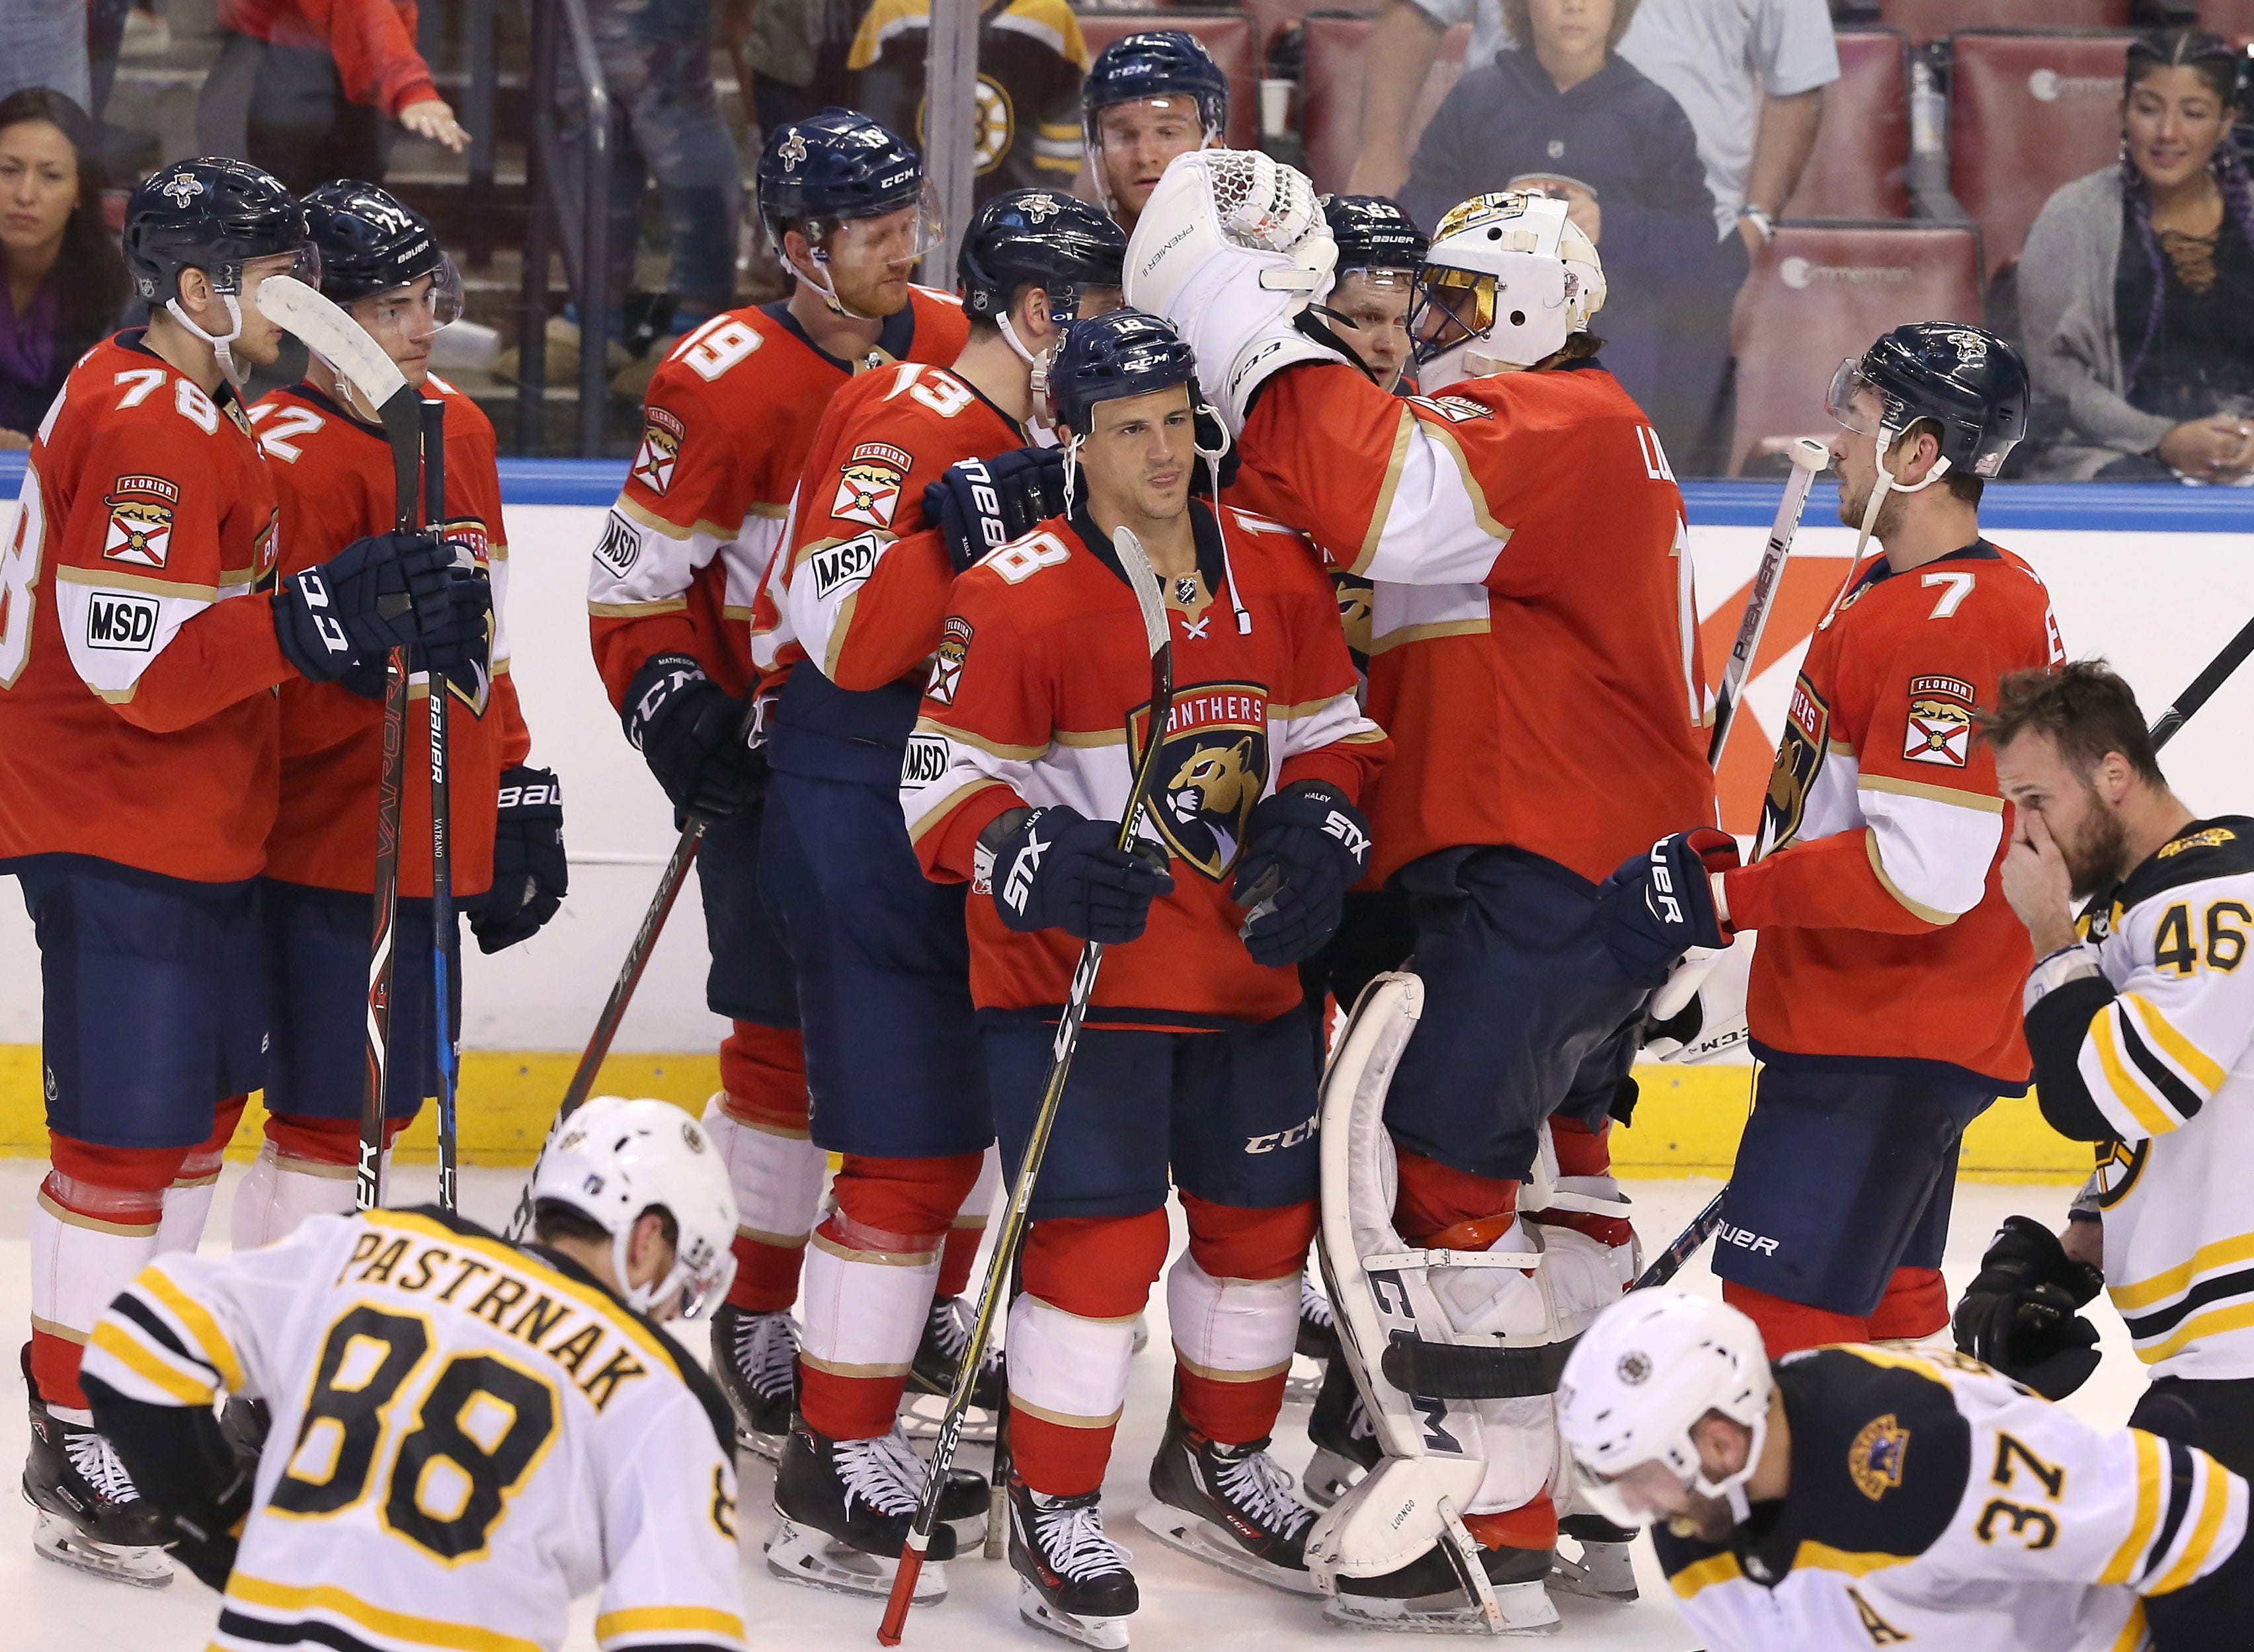 Panthers stay alive in Roberto Luongo's 1,000th career game